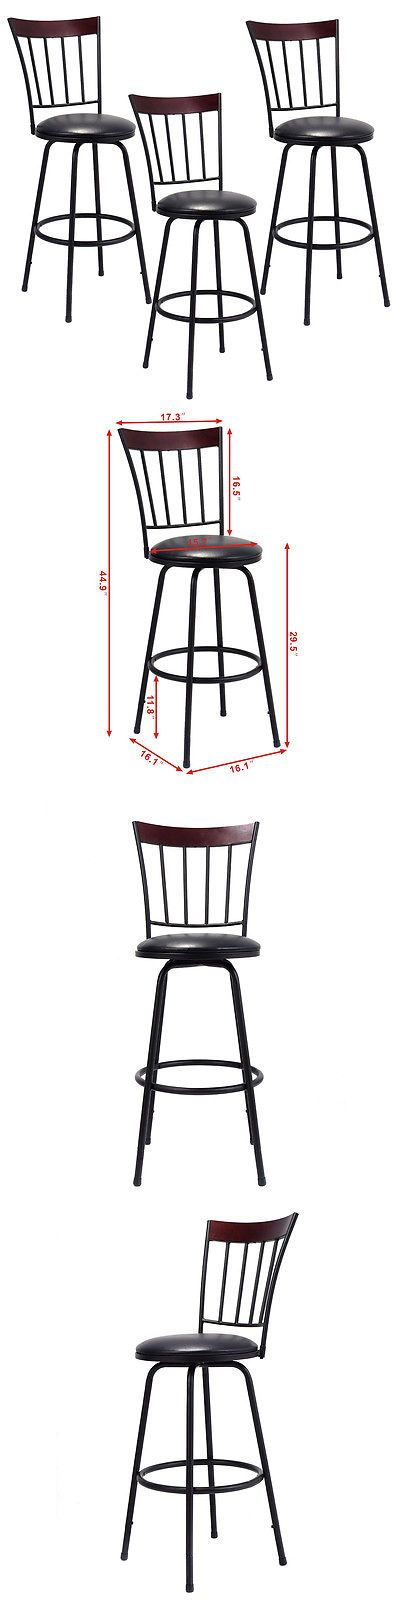 Bar Stools 153928: Set Of 3 Swivel Bar Stools Pu Leather Steel Frame Barstool Bistro Pub Chair New -> BUY IT NOW ONLY: $89.99 on eBay!